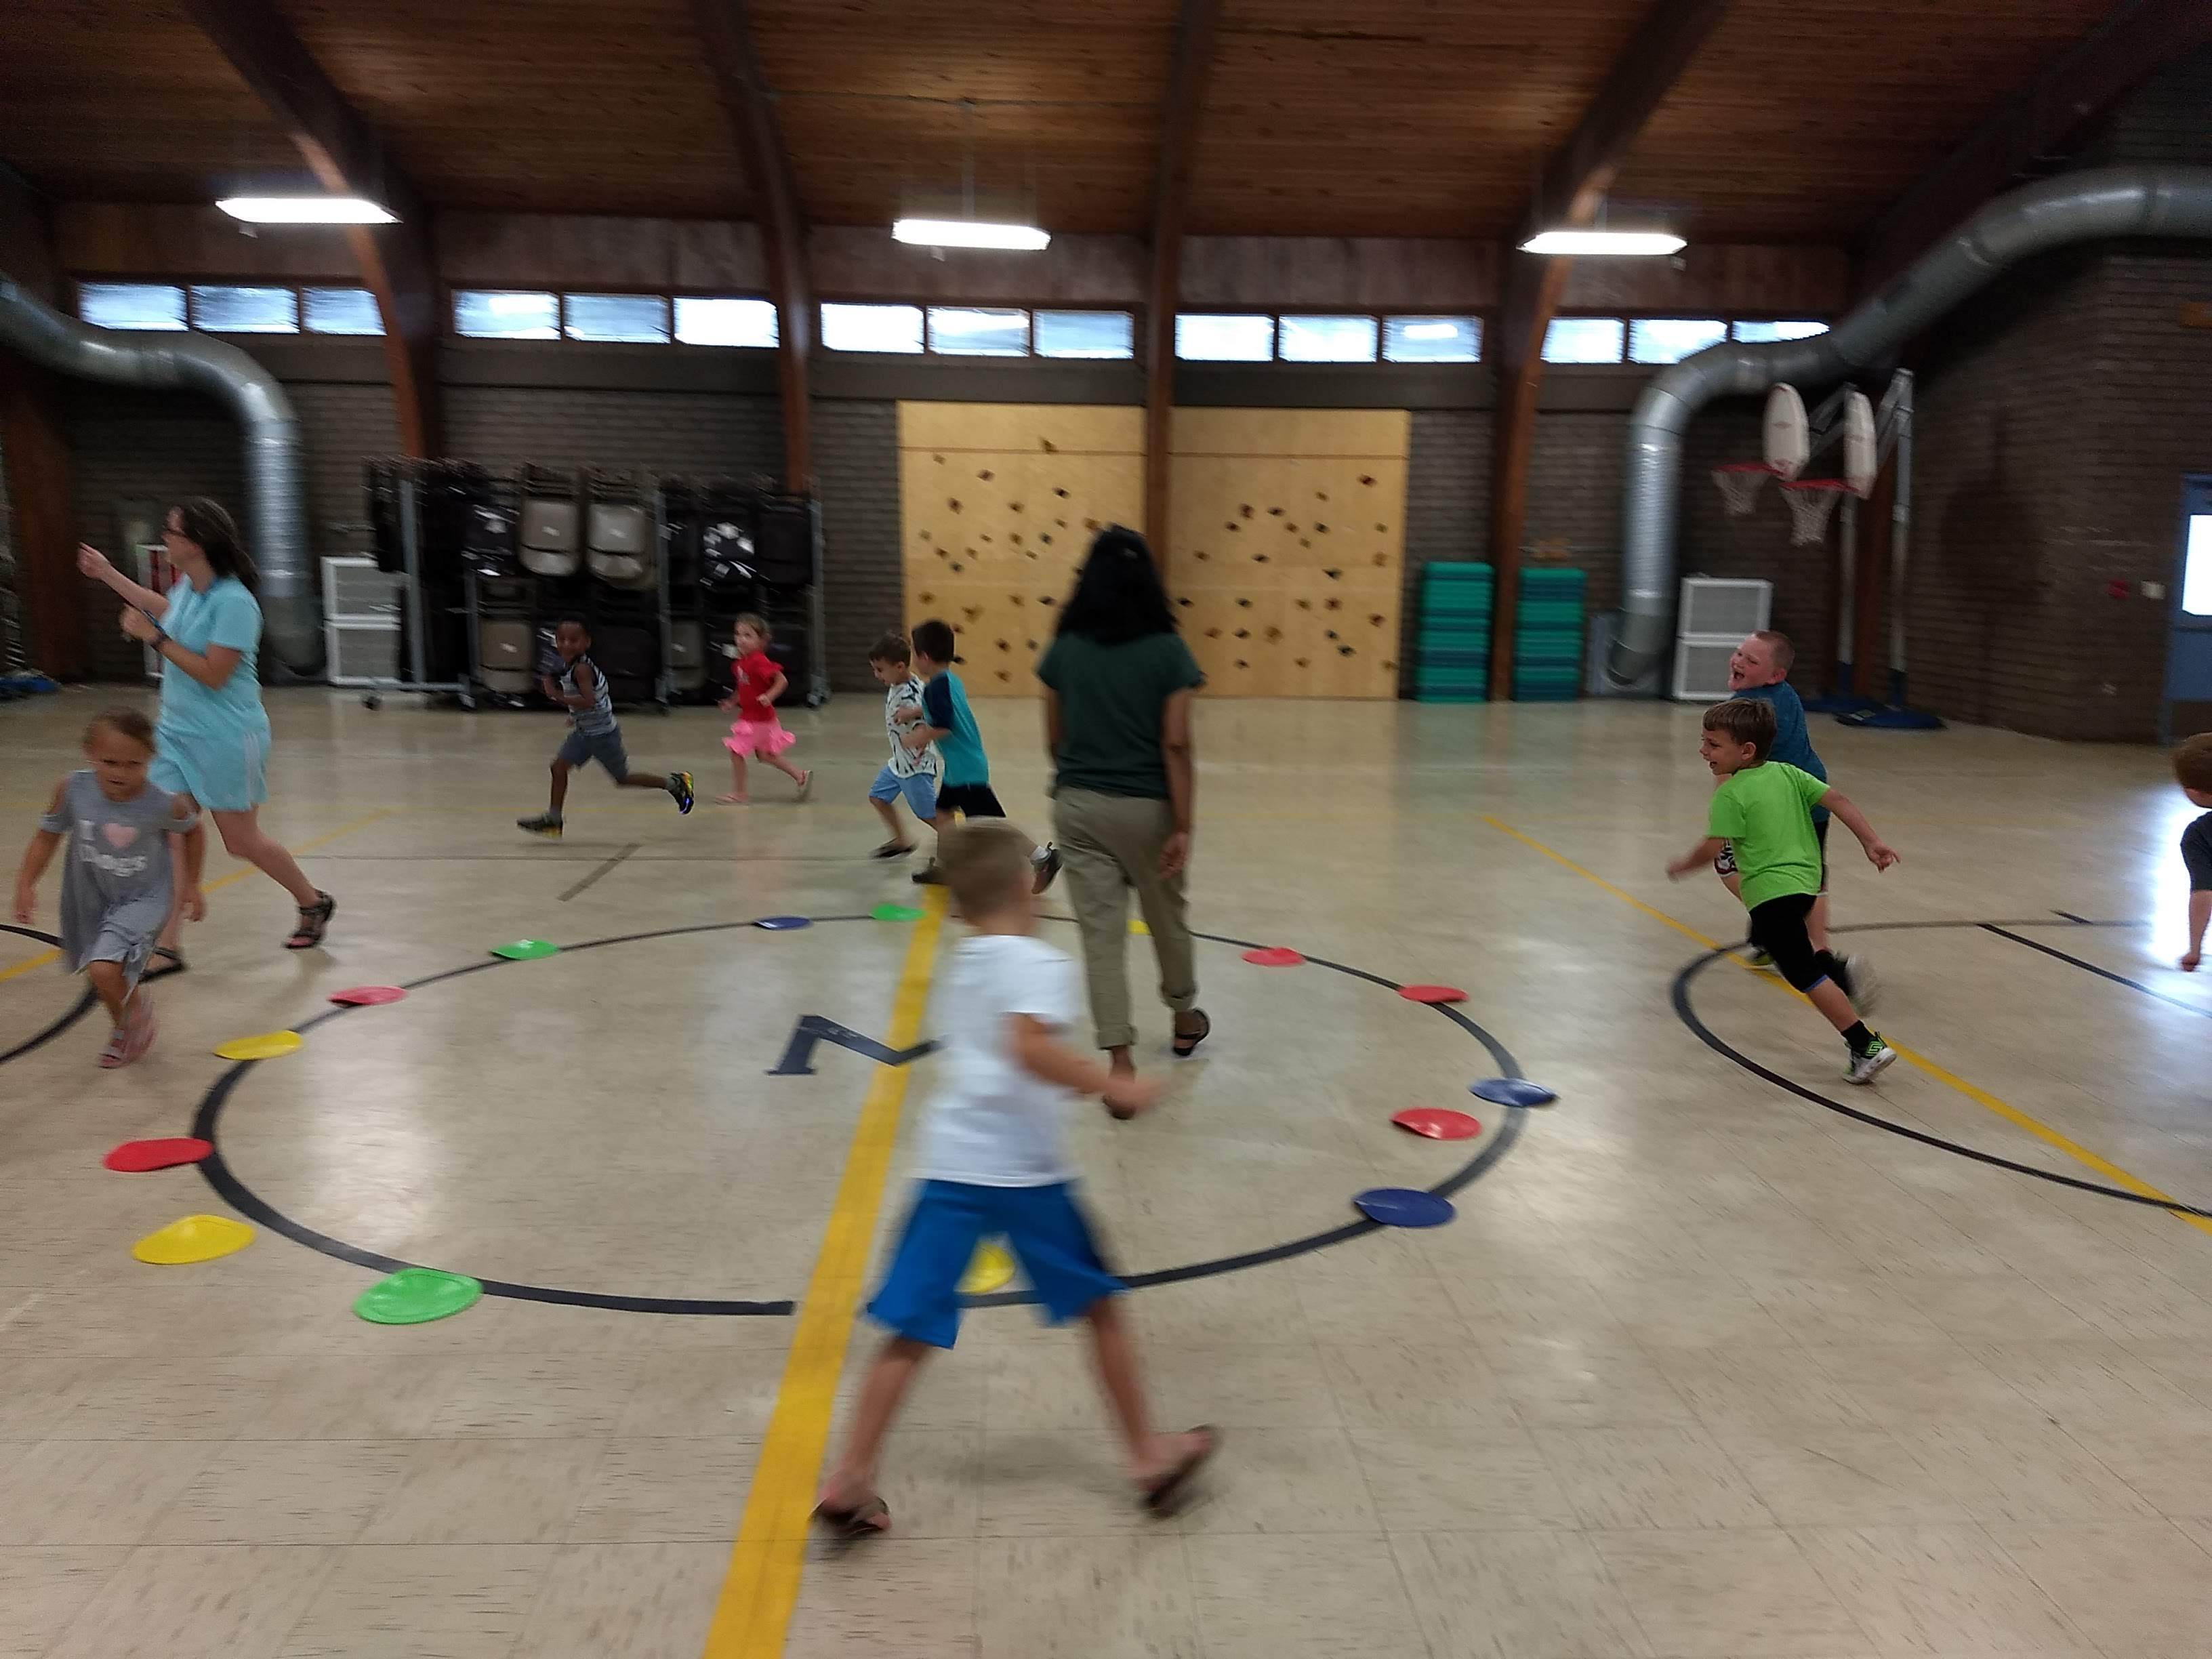 Image of kids playing in a gym